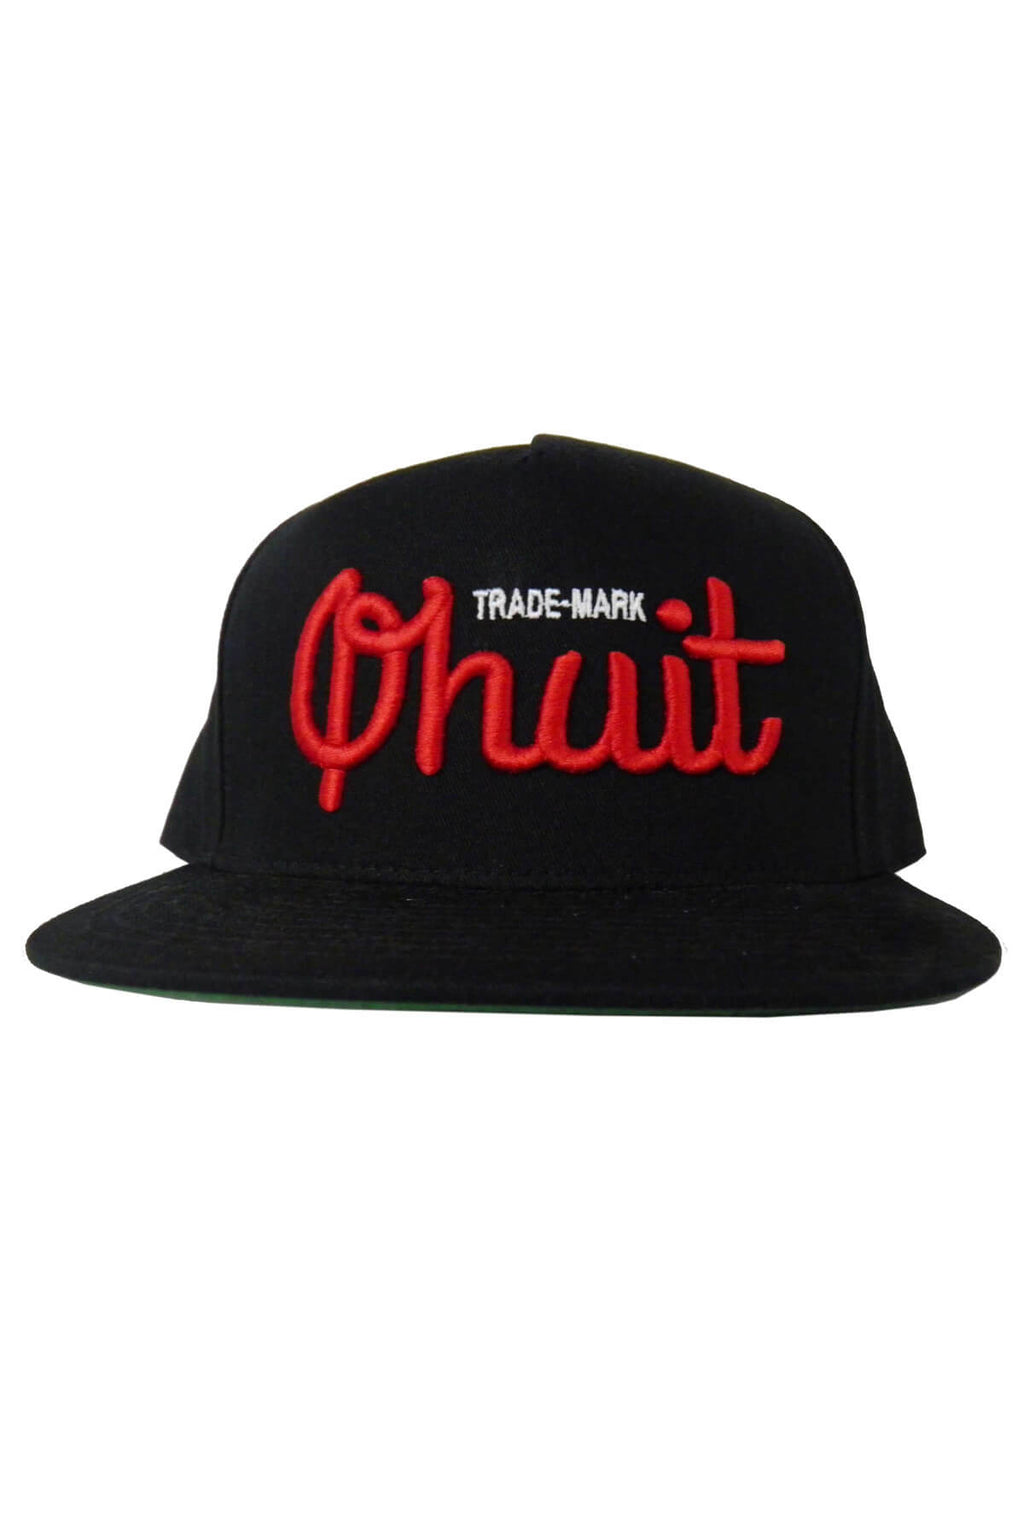 LOGO, snap black & red - QHUIT Streetwear